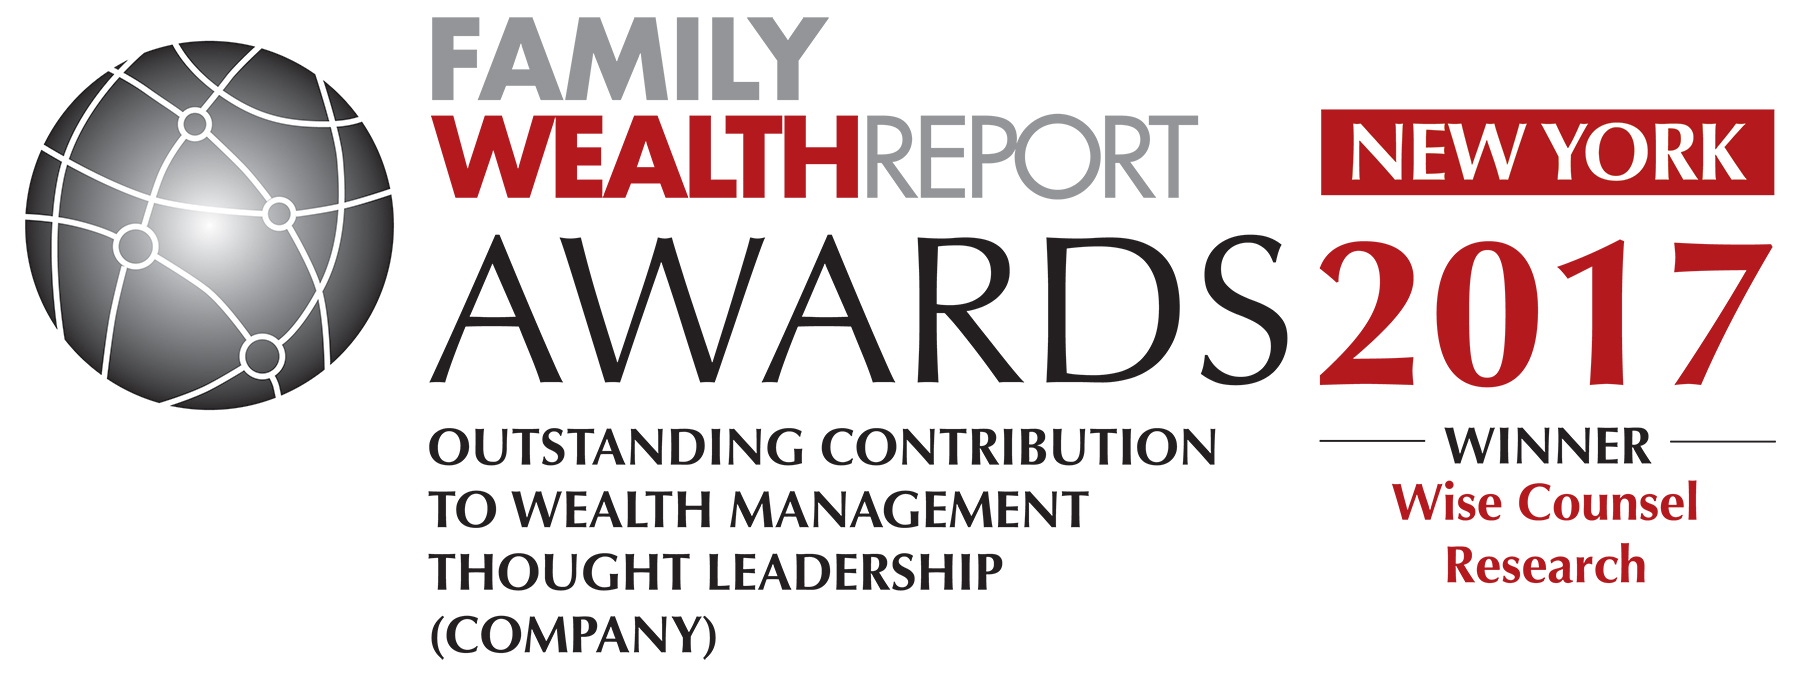 Family Wealth Report Award Wise Counsel Research Thought Leader